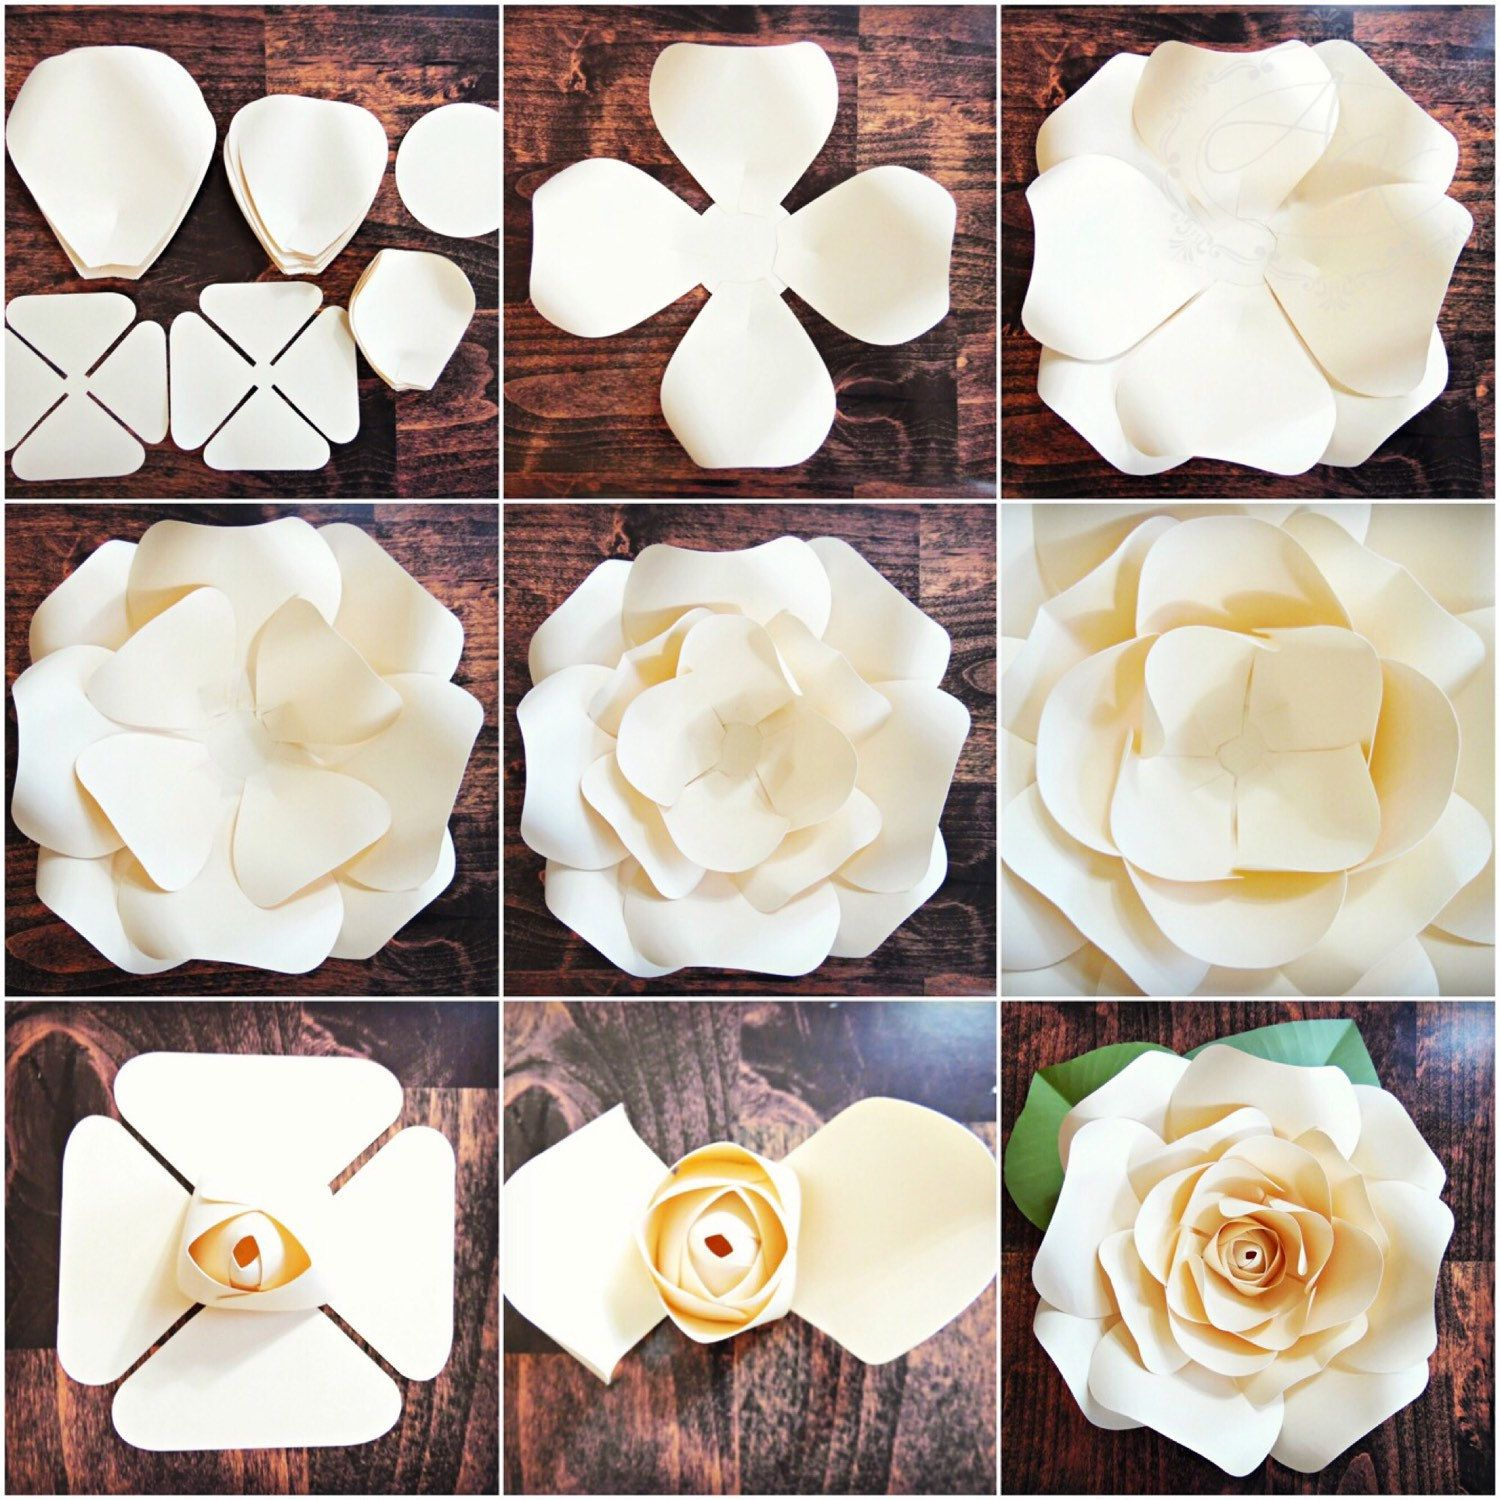 DIY Giant Rose Templates Paper Rose Patterns u Tutorials Paper